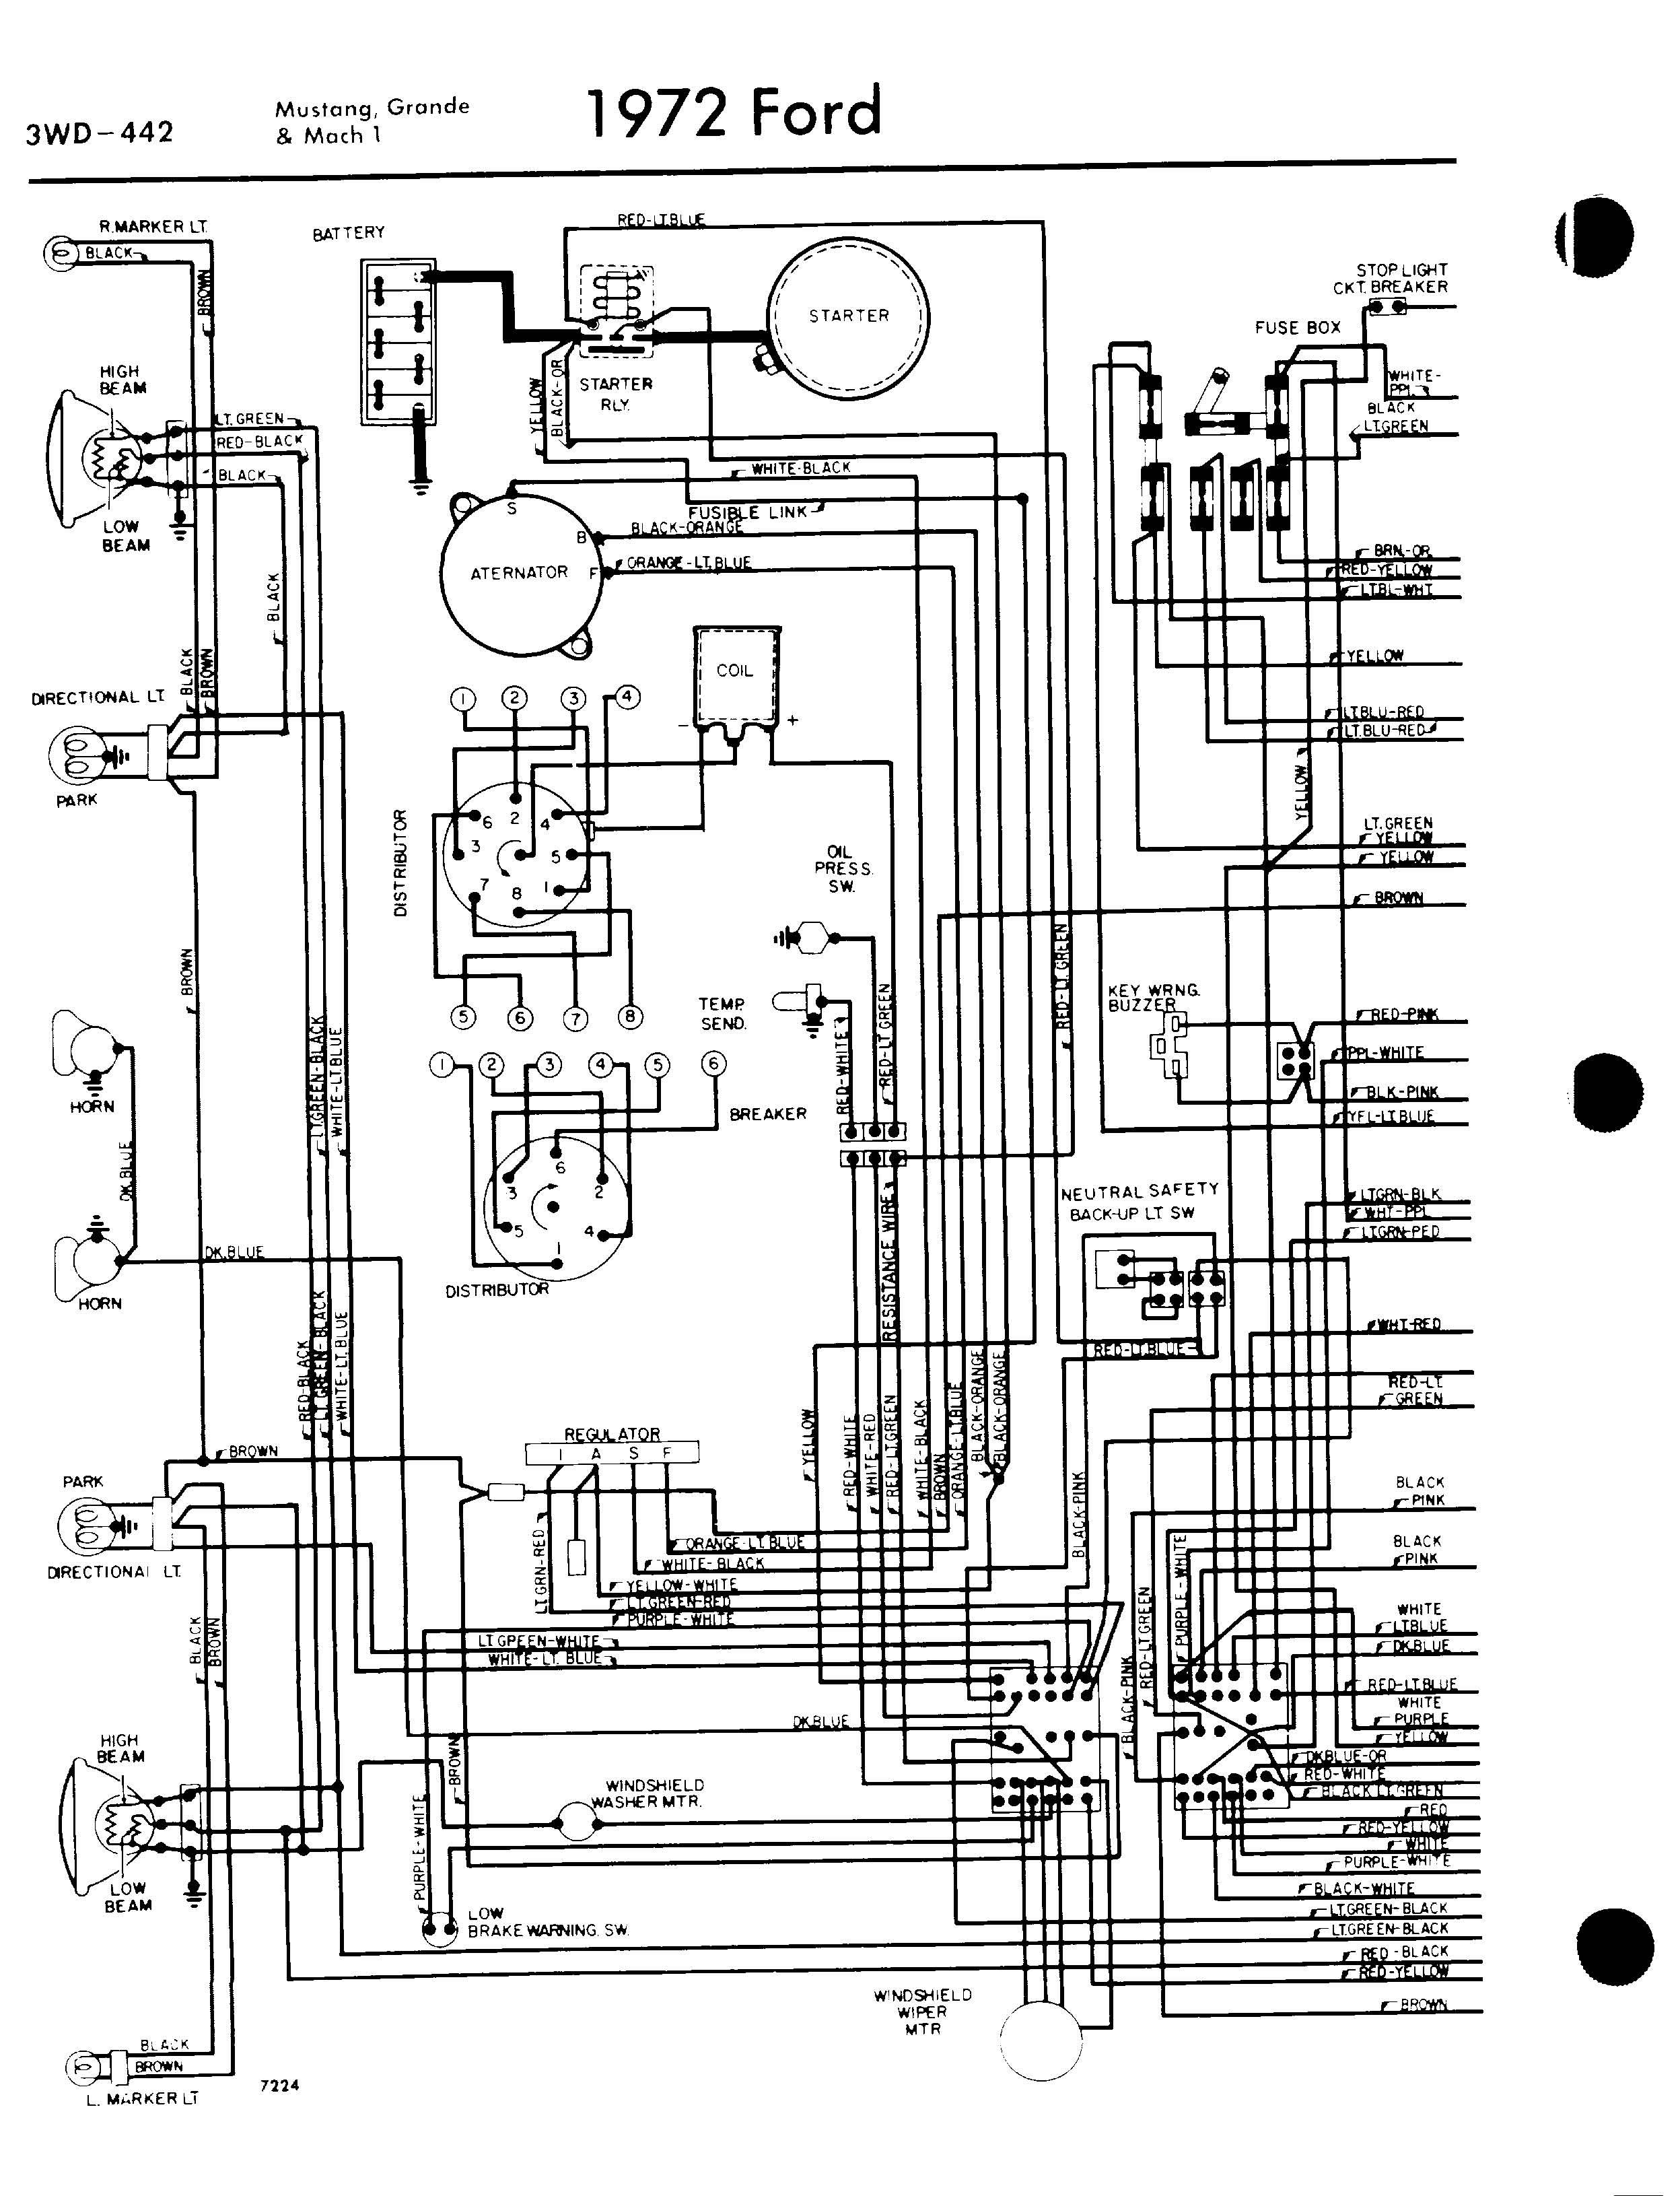 72 mach1 alternator wire harness diagram - yahoo search results yahoo image  search results | electrical circuit diagram, alternator, mustang  pinterest